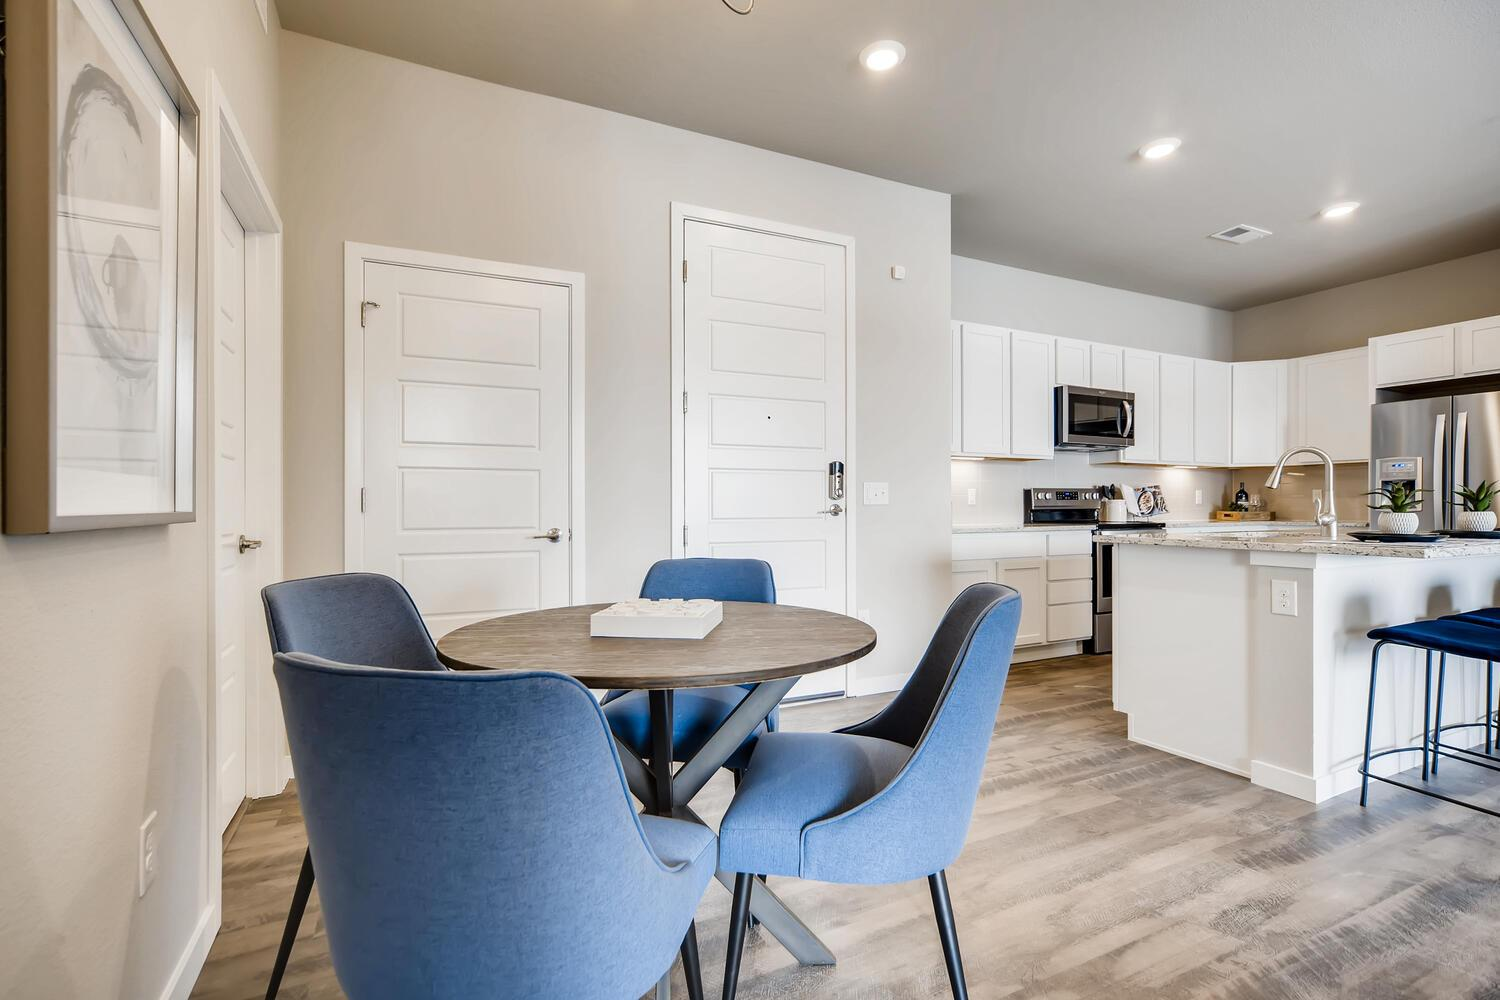 Kitchen featured in the 2B By Century Communities in Denver, CO